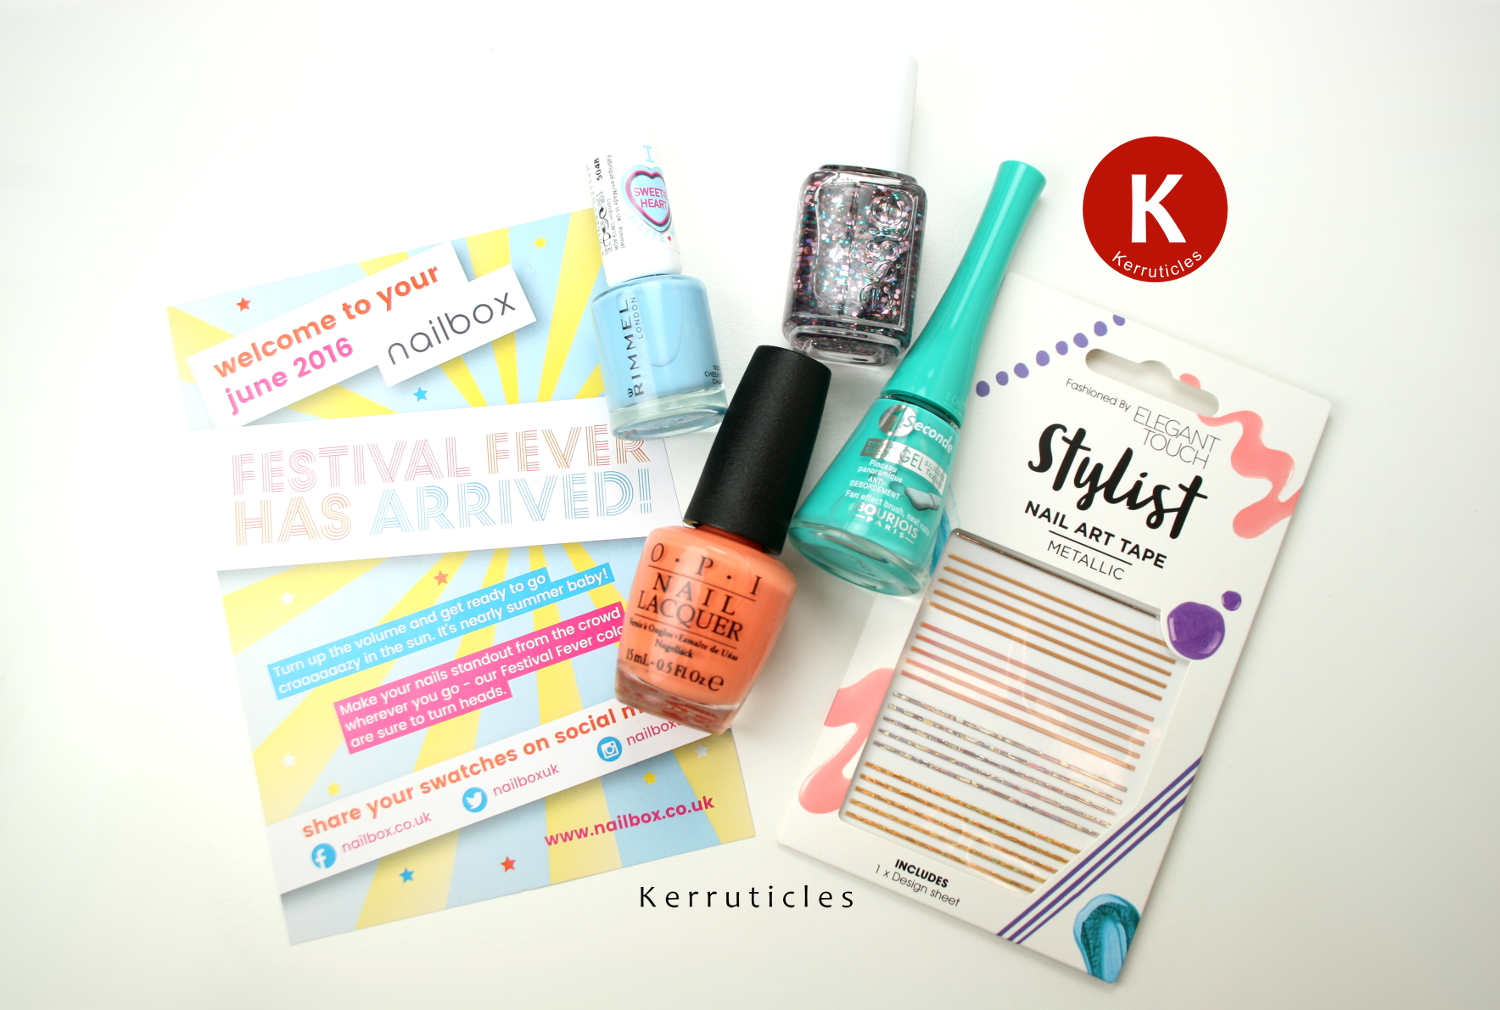 June 2016 Nailbox: Festival Fever